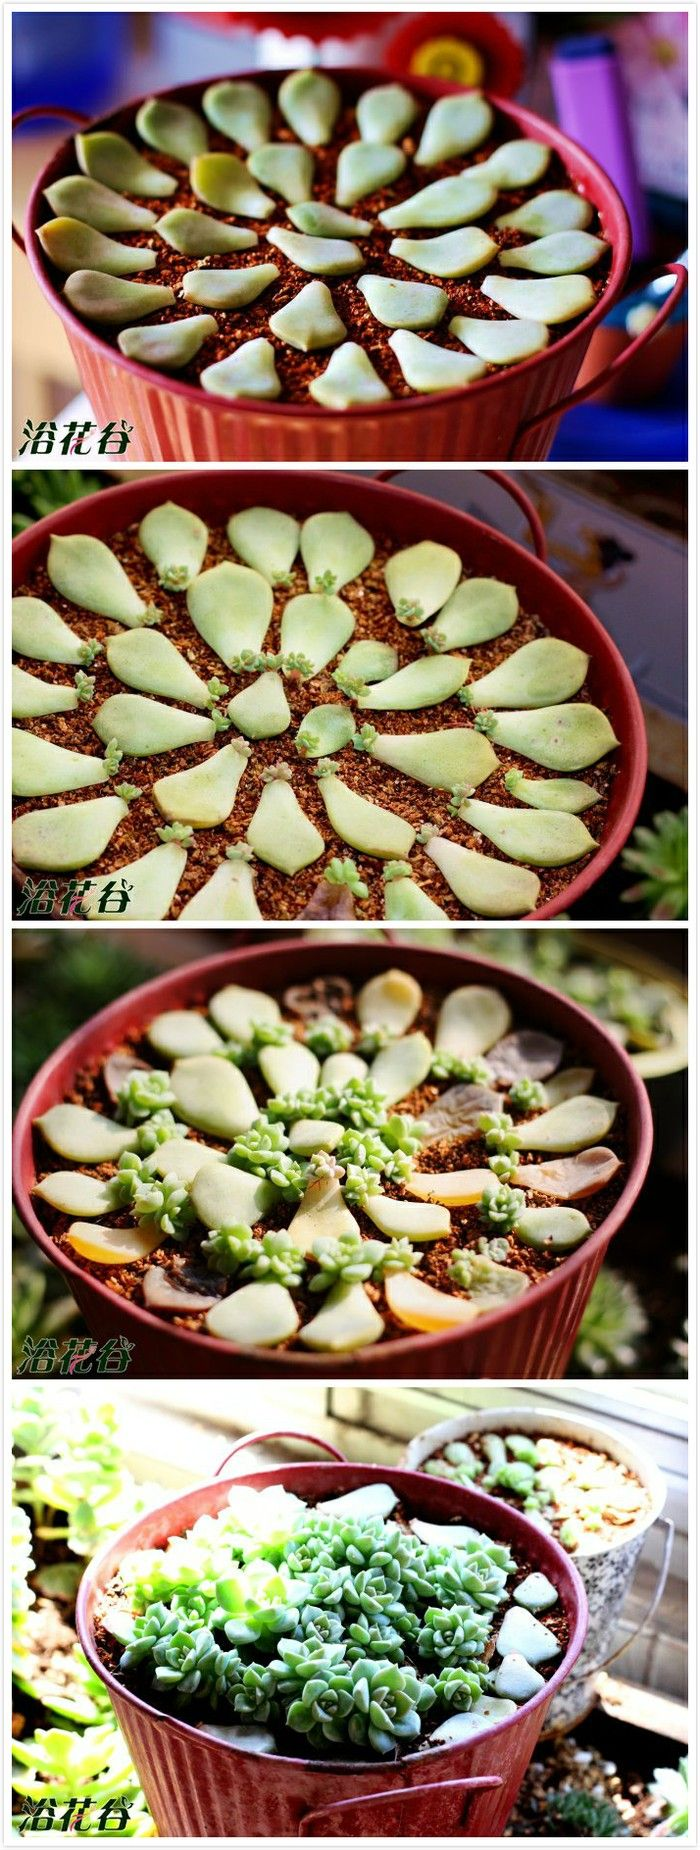 叶插小肉肉, beautiful succulent propagation pics